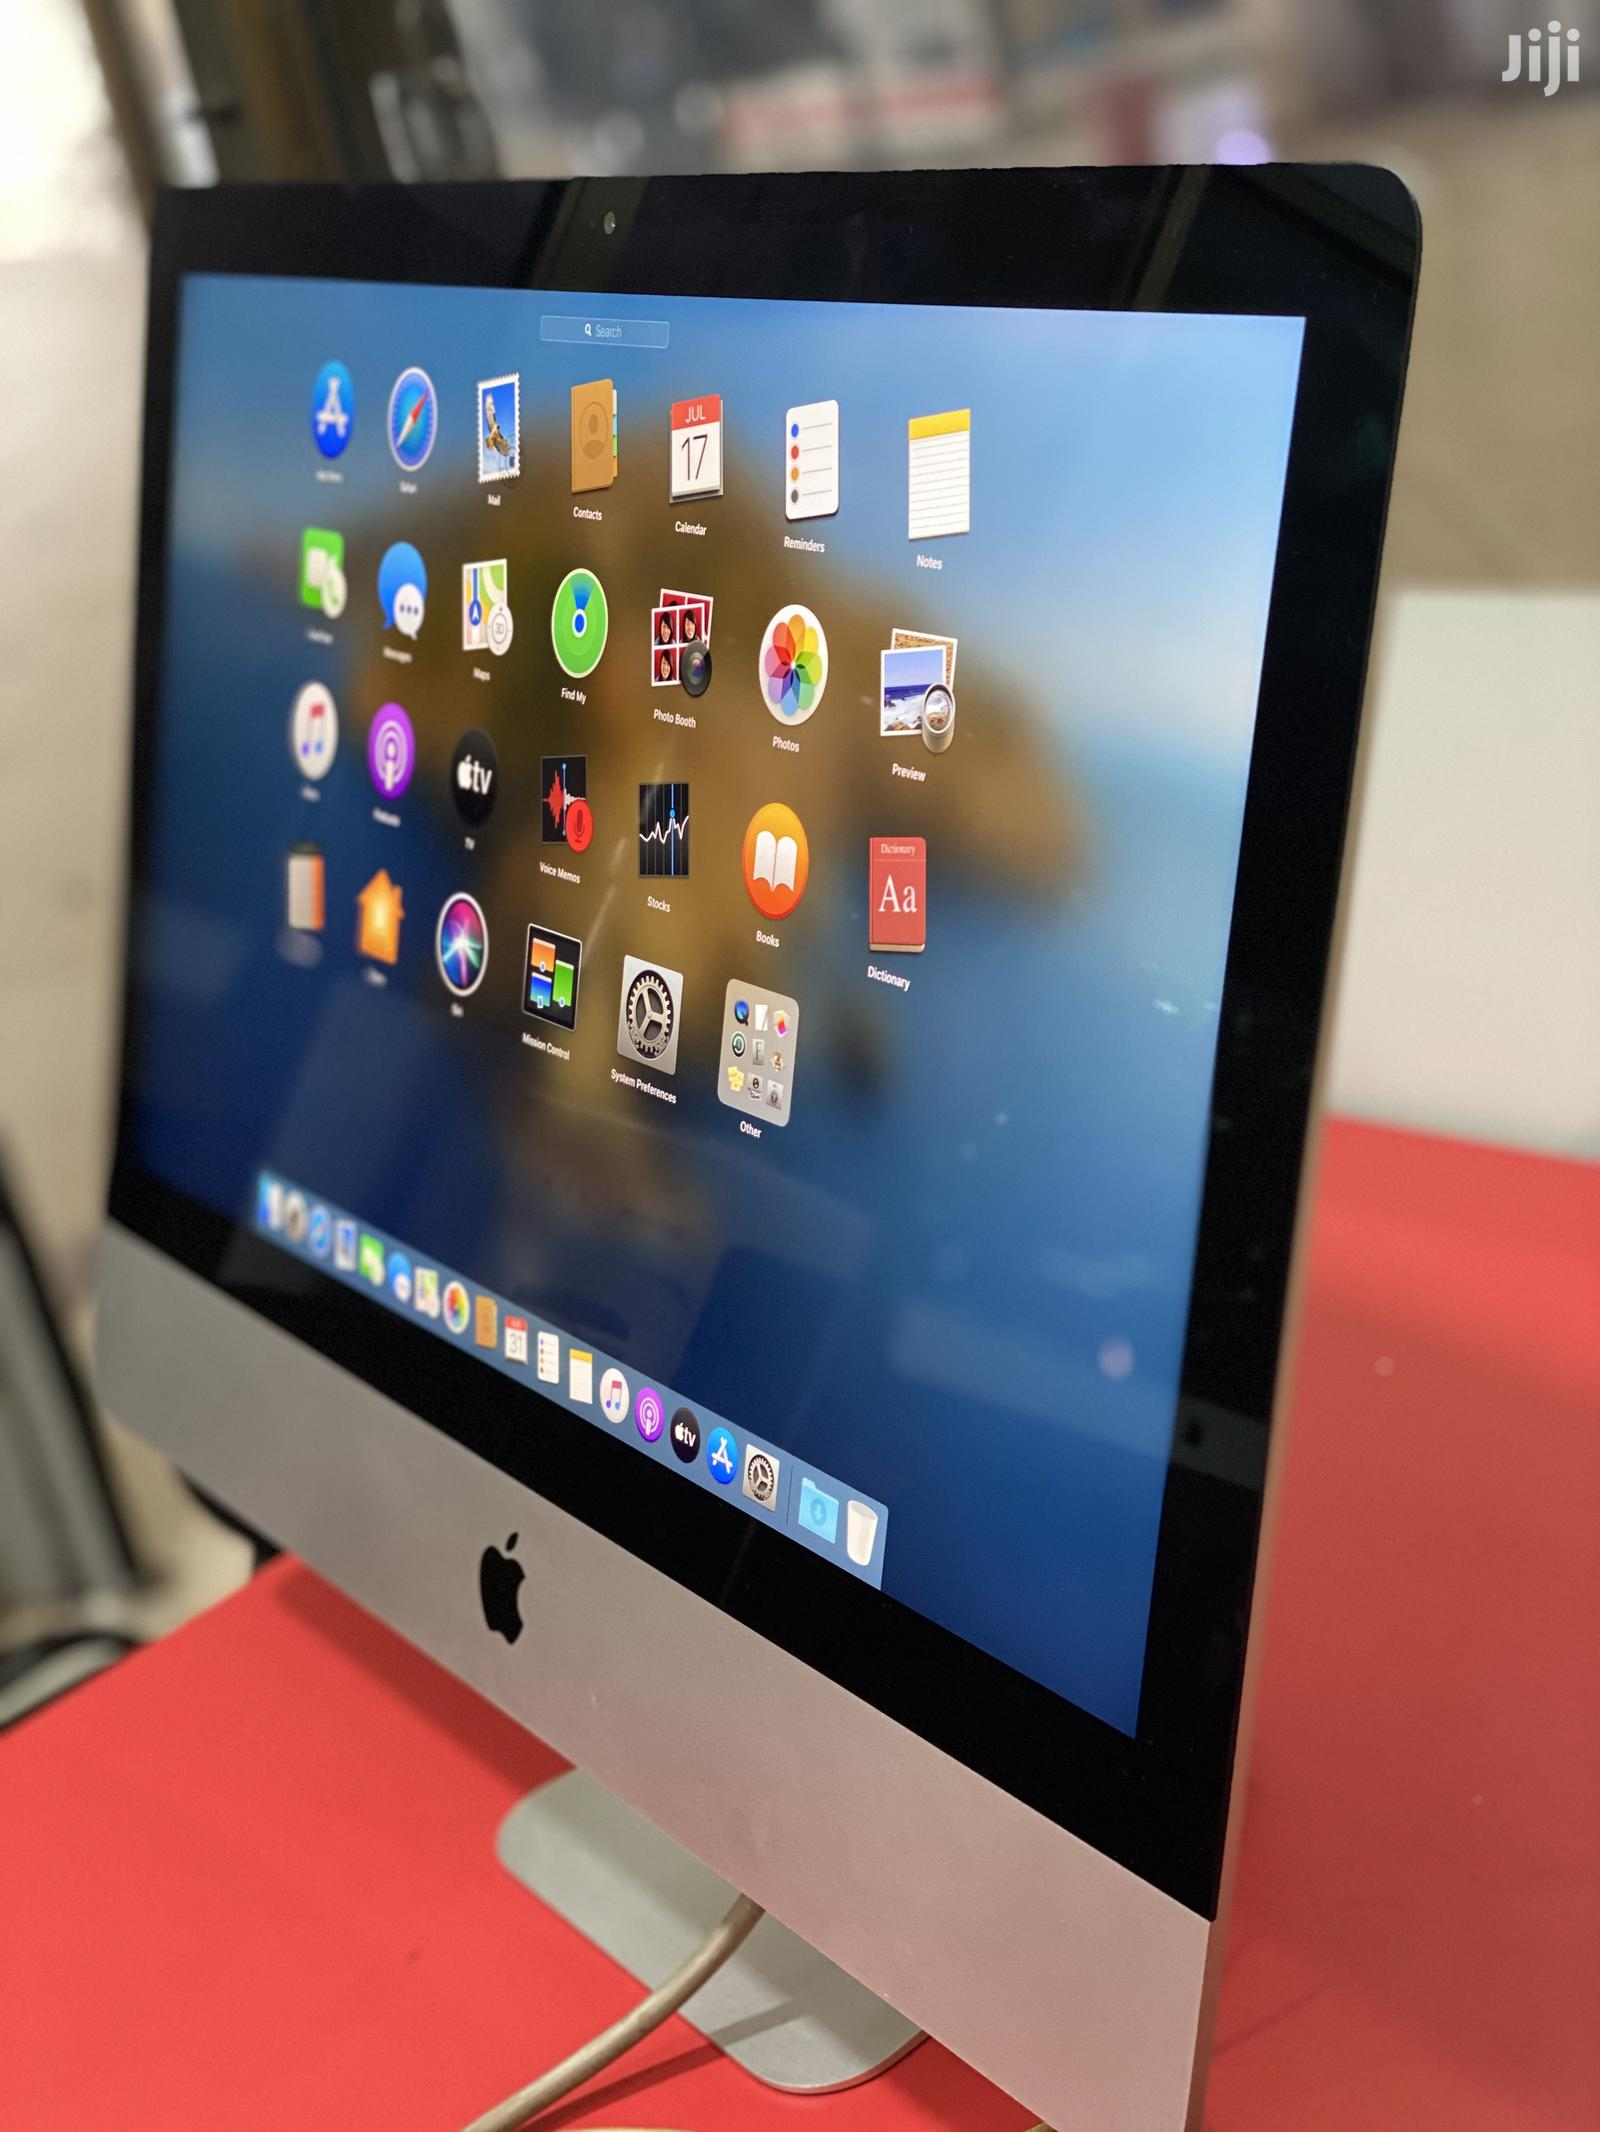 New Desktop Computer Apple iMac 16GB Intel Core i5 HDD 1T | Laptops & Computers for sale in Kampala, Central Region, Uganda